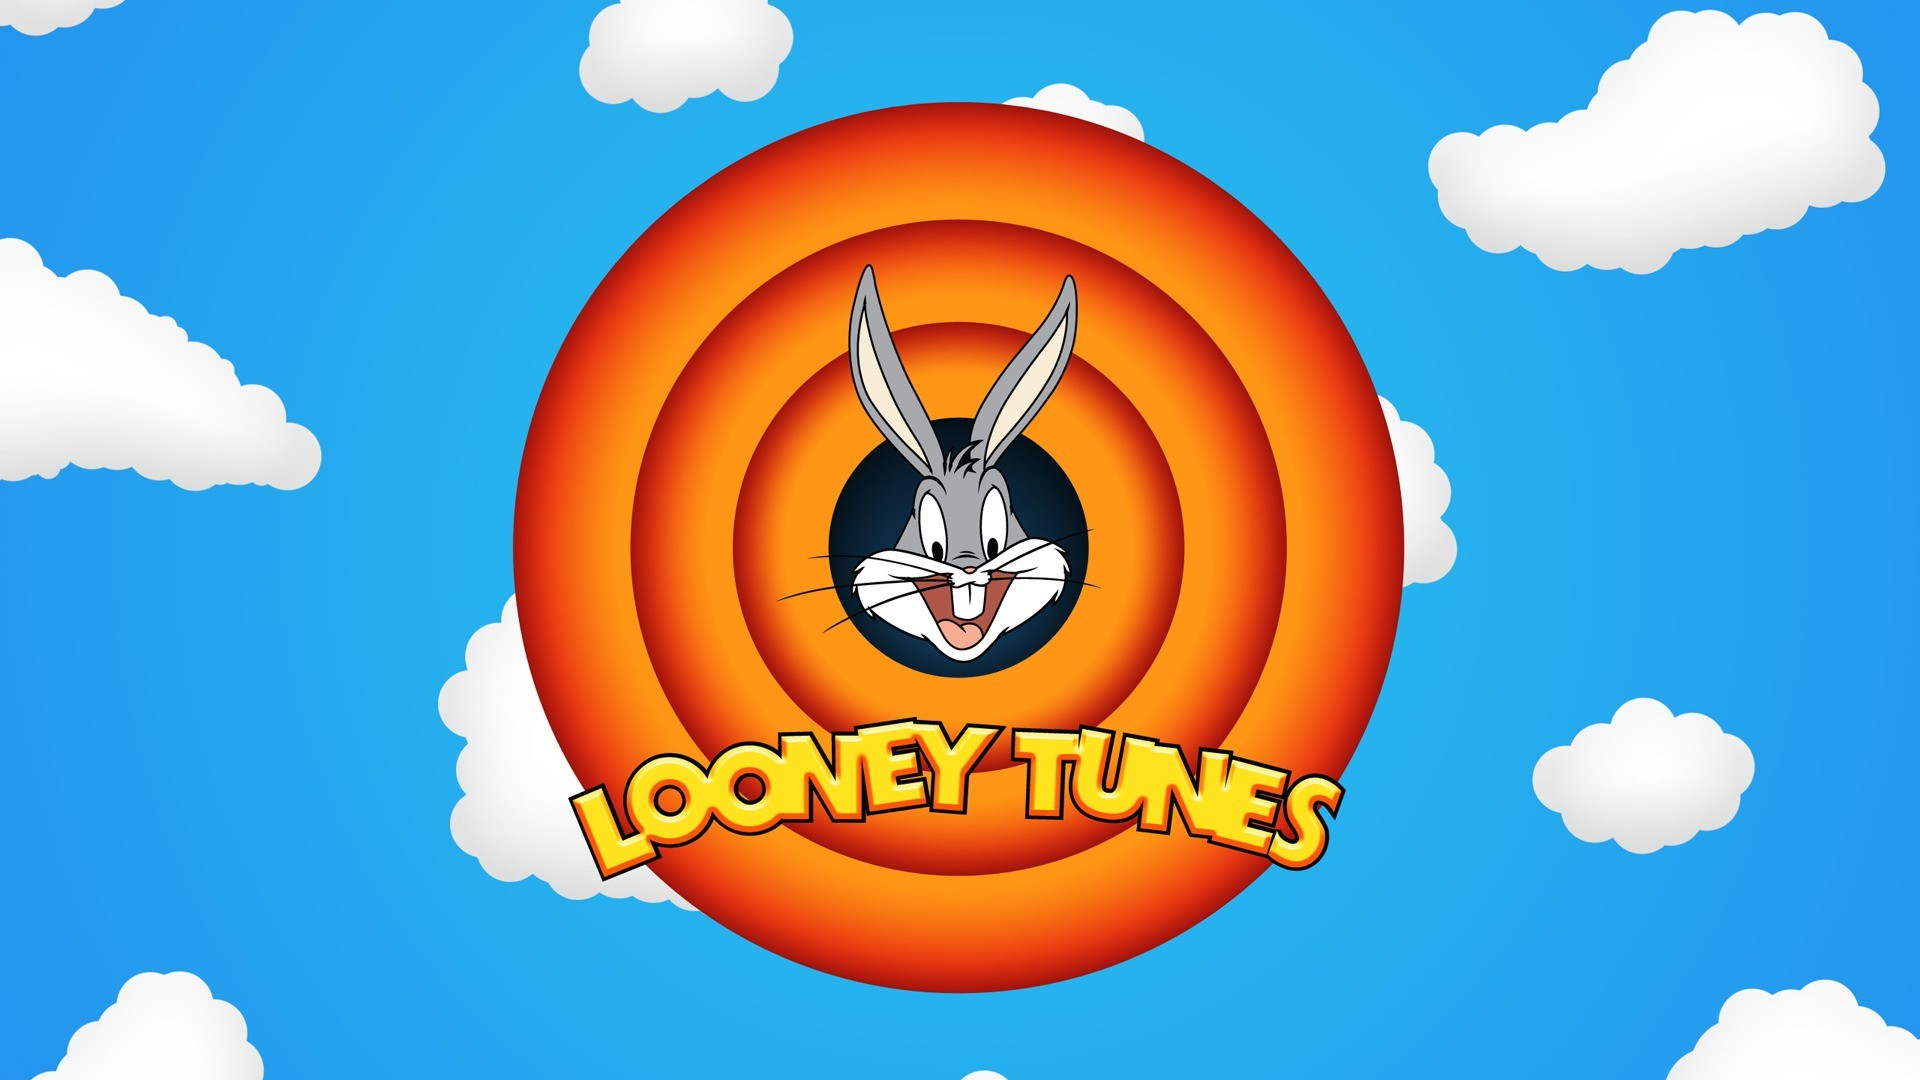 1920x1080 Looney Tunes Wallpaper Cartoons Anime Animated Wallpapers